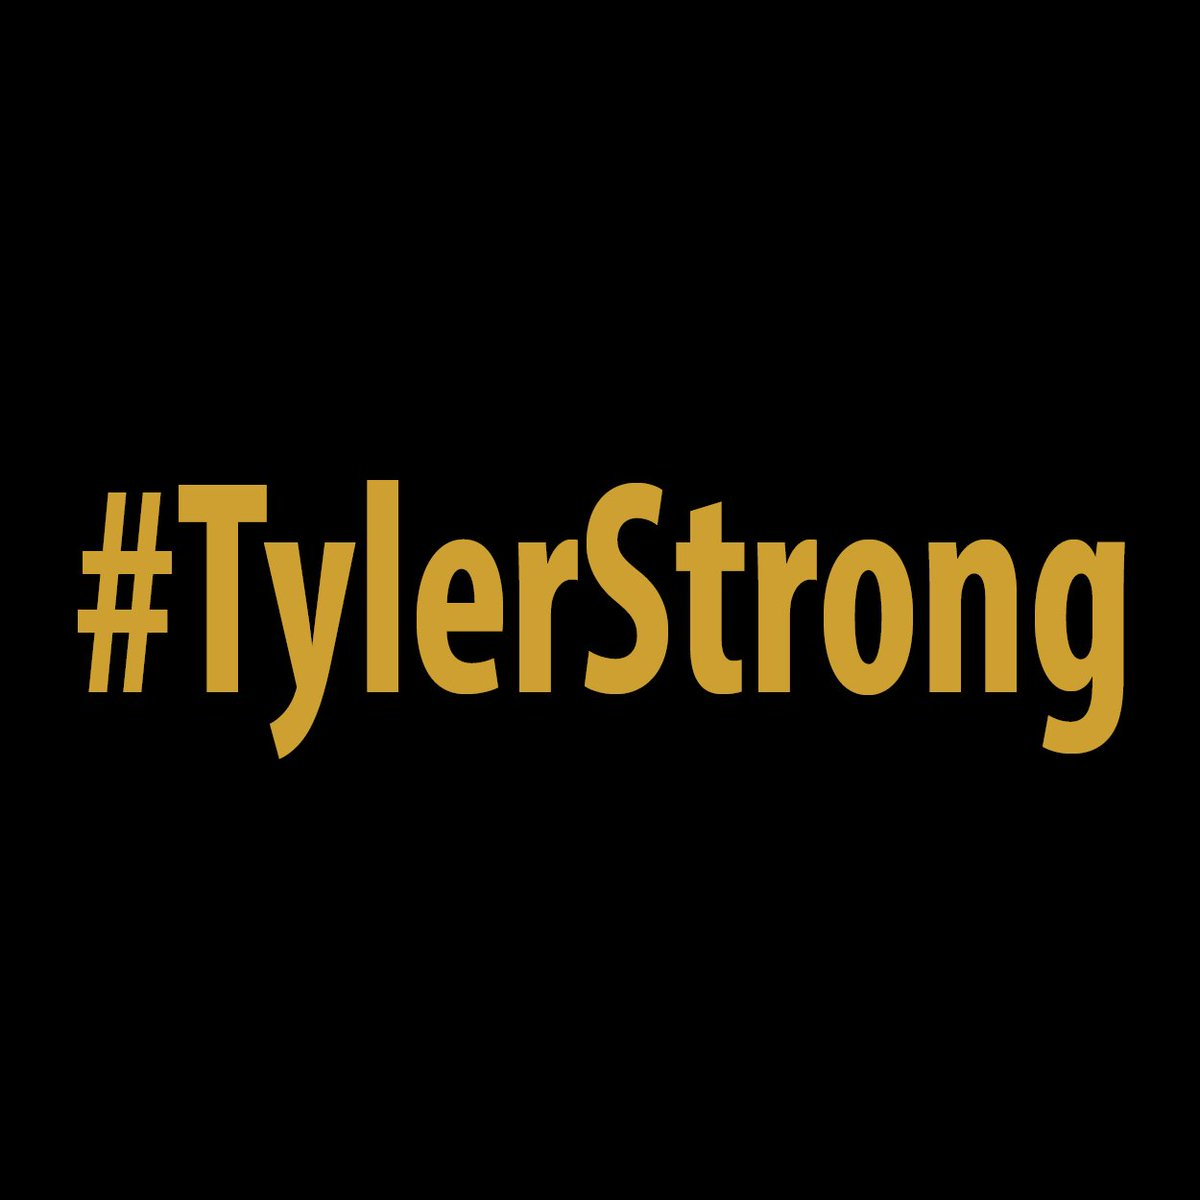 Feel Free To Use Our Tylerstrong Profile Pic To Let Thetylertrent Know That Boilermakers Are Here If He Needs Us And He Is Always In Our Thoughts